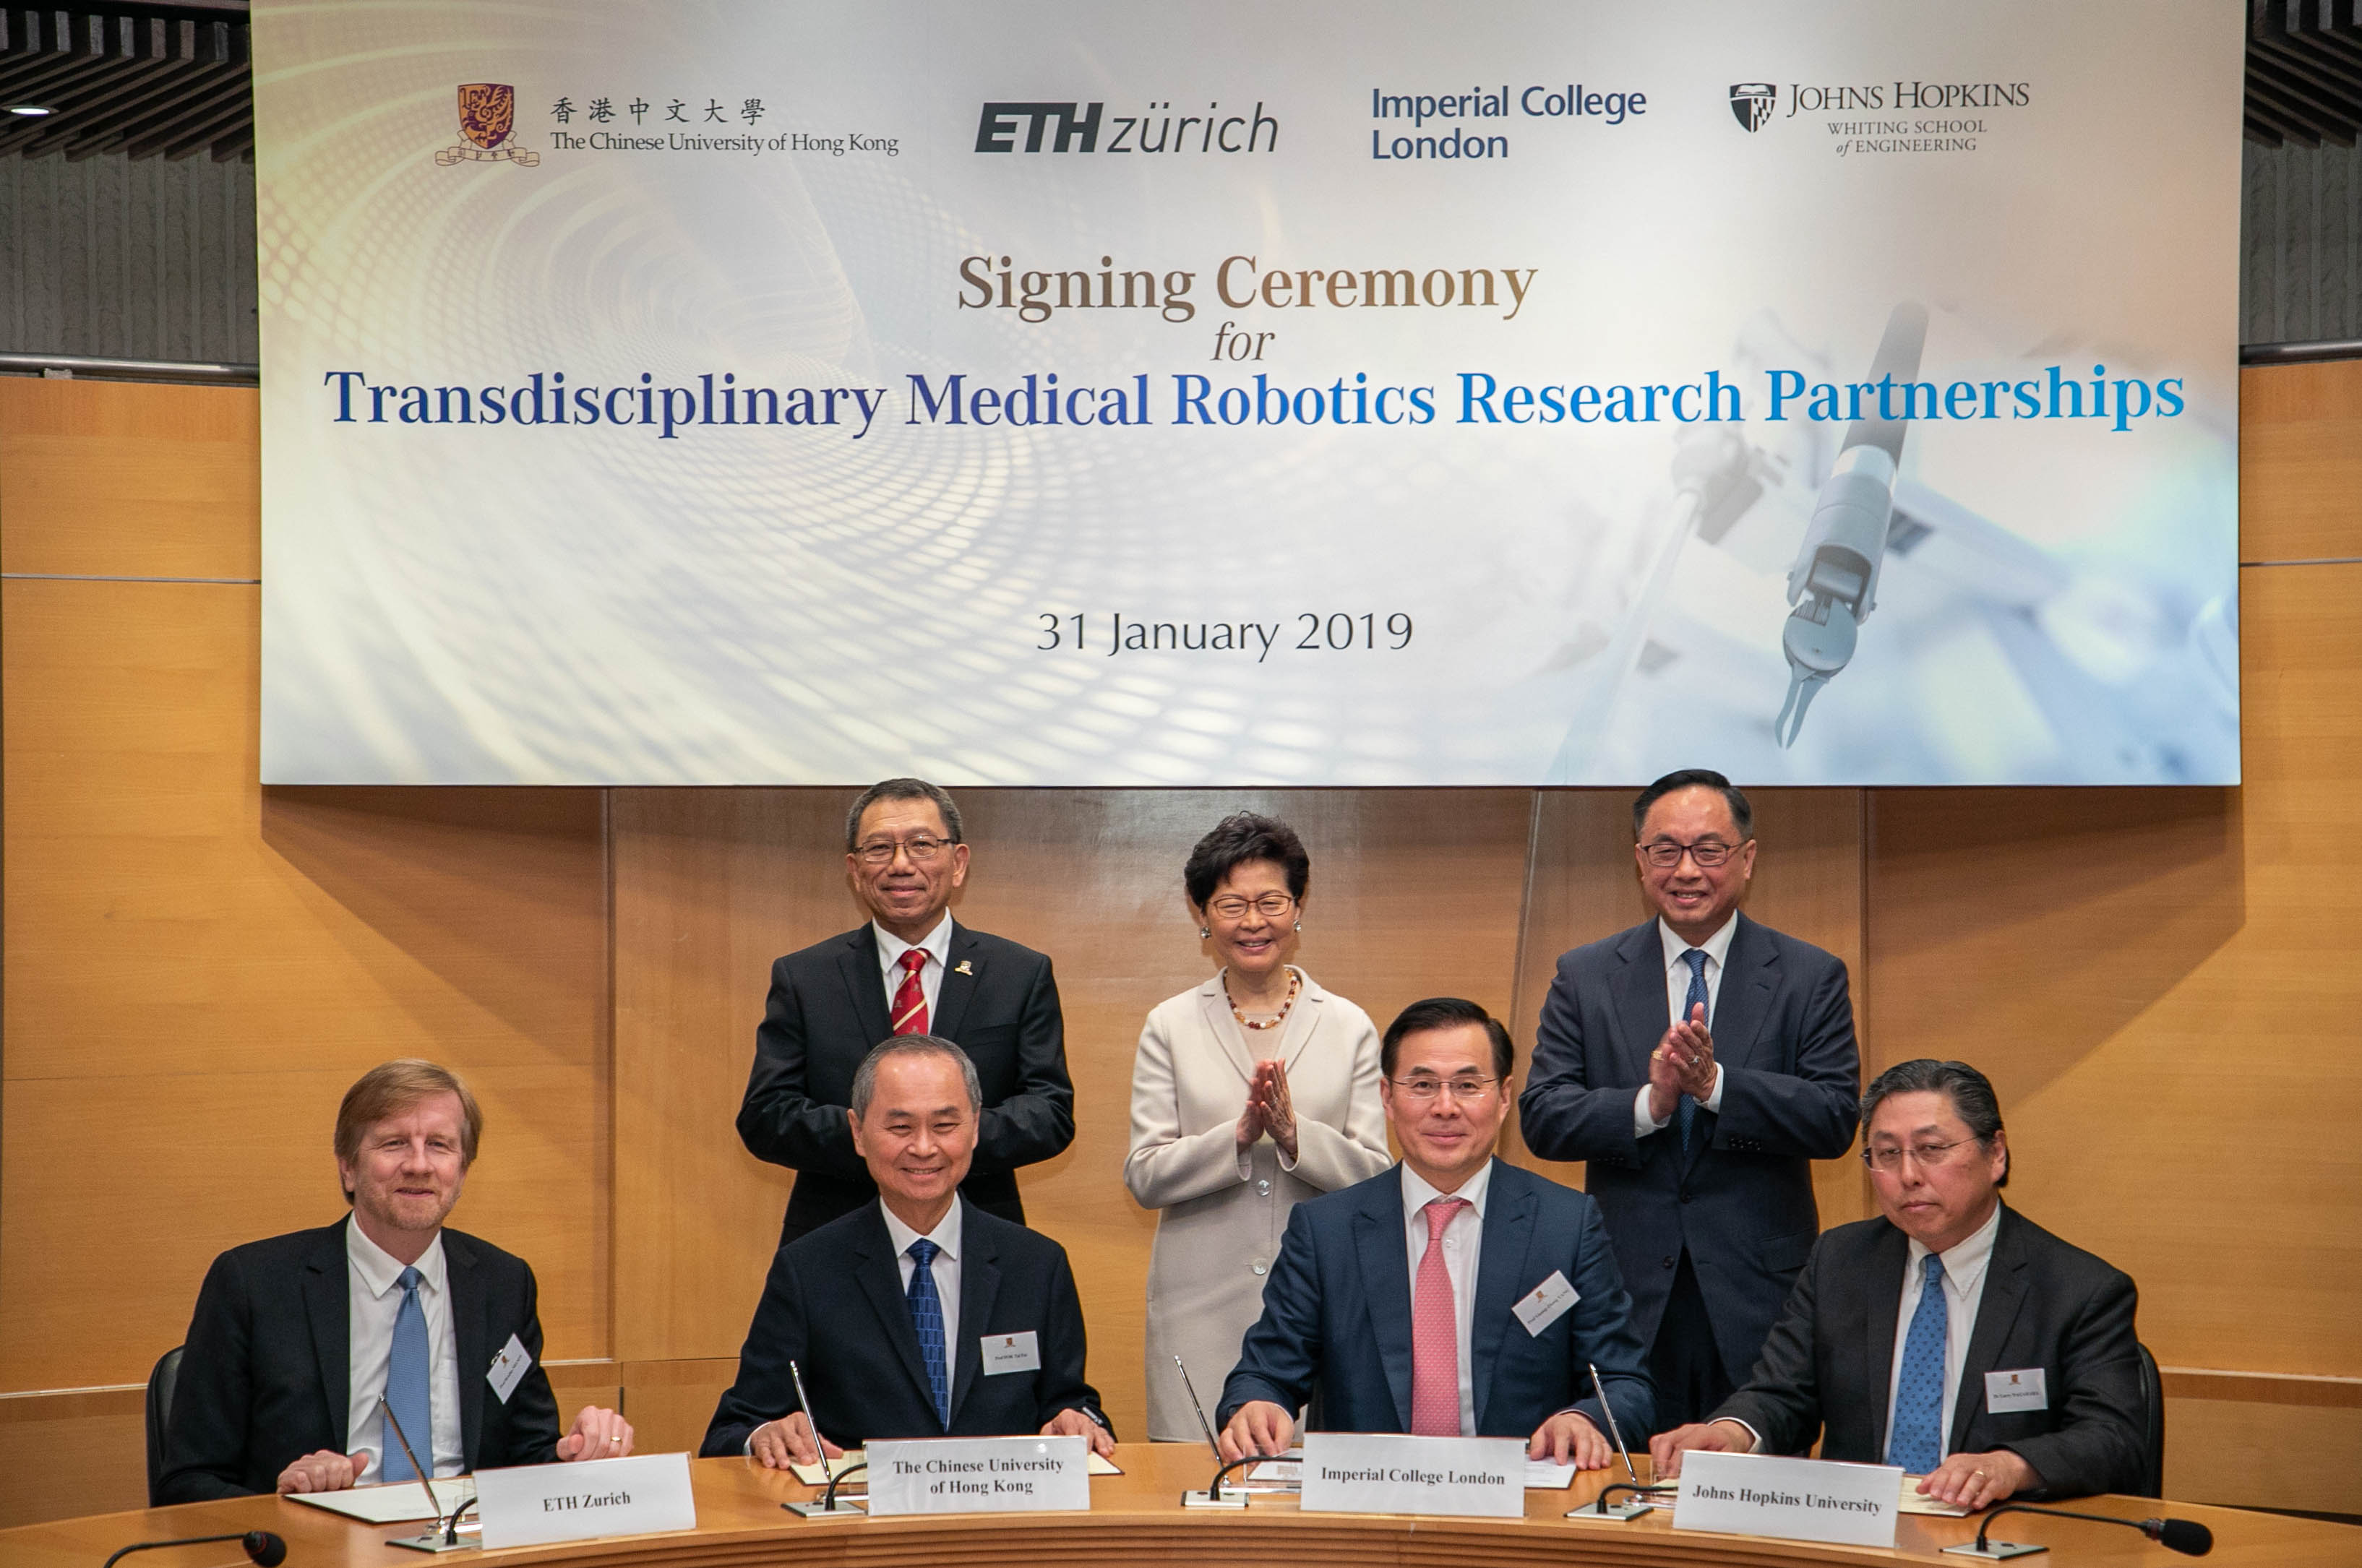 The Chinese University of Hong Kong (CUHK) established partnerships with ETH Zurich, Imperial College London and Johns Hopkins University to deepen ties on transdisciplinary medical robotics research. The event was witnessed by The Hon Mrs. Carrie LAM CHENG Yuet-ngor (back row center), The Chief Executive of the Hong Kong Special Administrative Region (HKSAR); Professor Rocky S. TUAN (back row left), Vice-Chancellor and President of CUHK; and Mr. Nicholas W. YANG (back row right), Secretary for Innovation and Technology of the HKSAR Government.